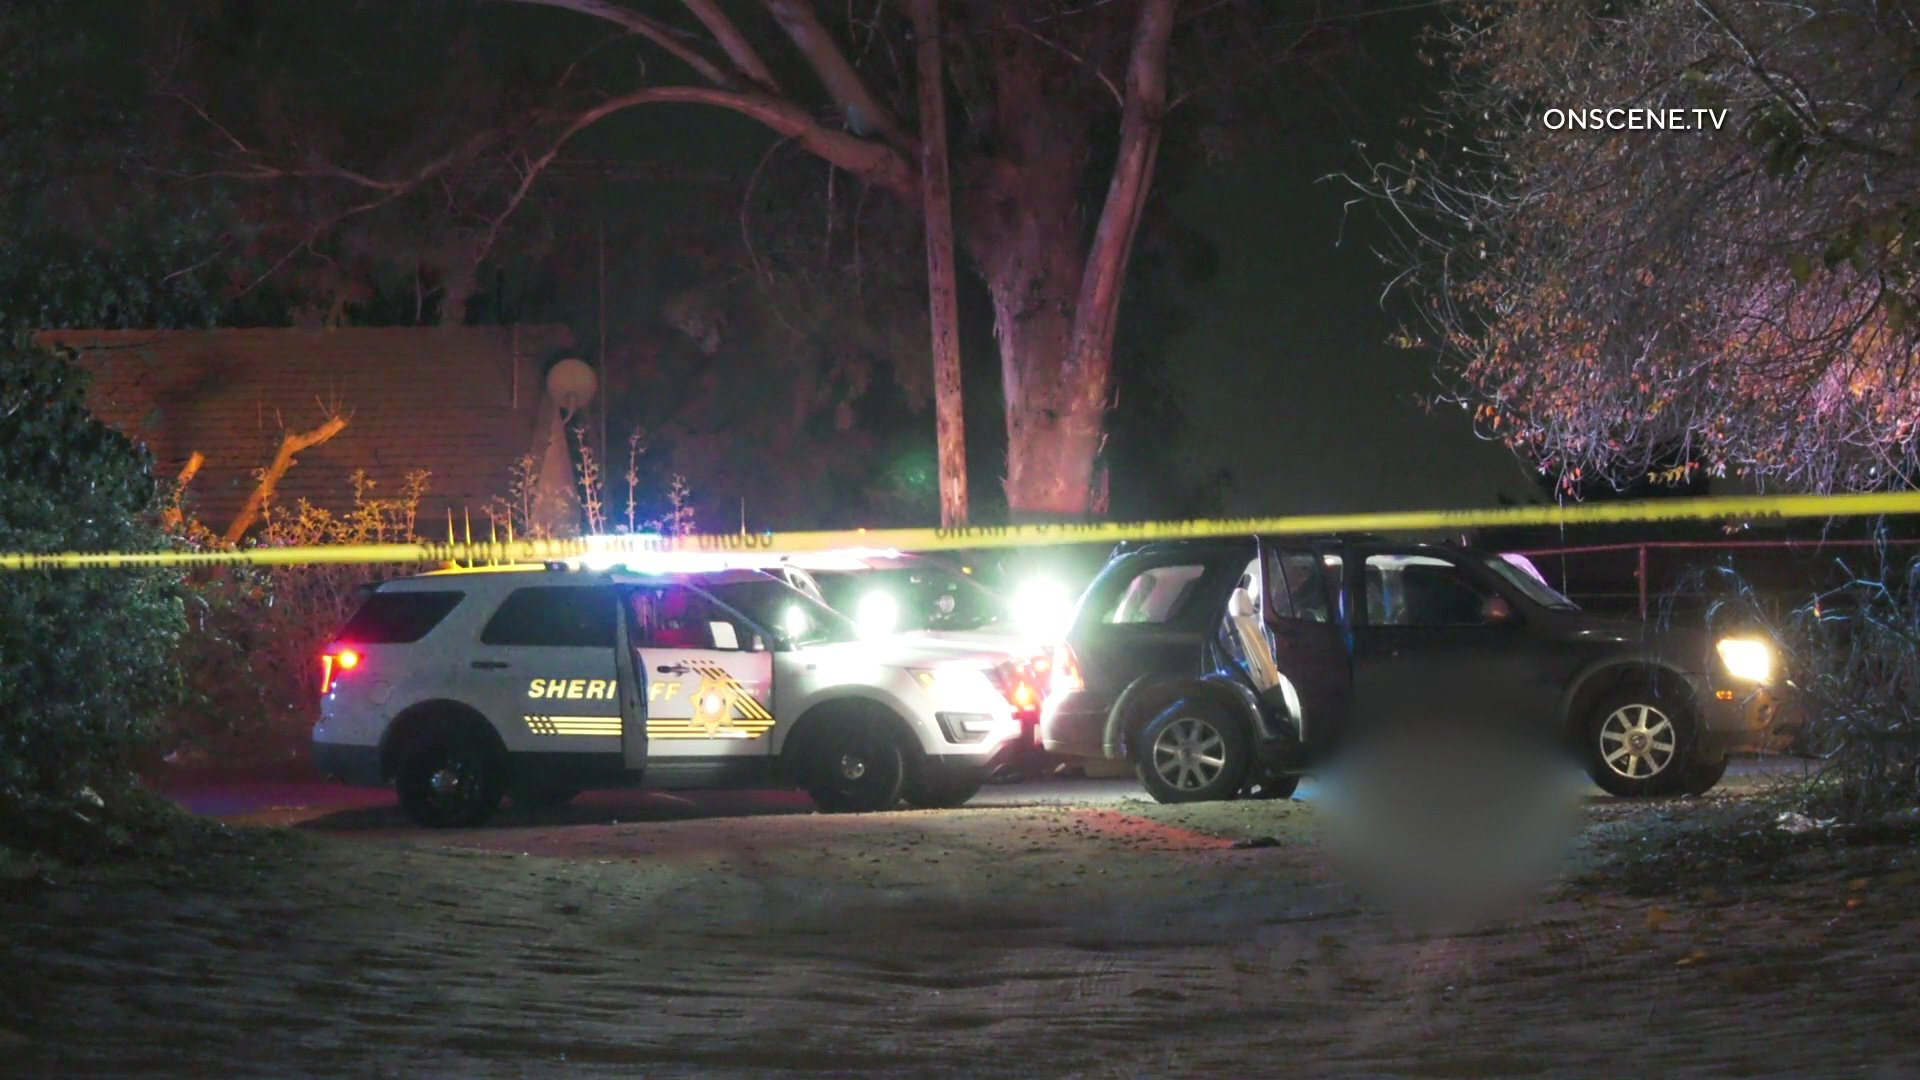 Investigators respond to the scene of a fatal deputy-involved shooting in Muscoy on Jan. 9, 2019. (Credit:Onscene.TV)